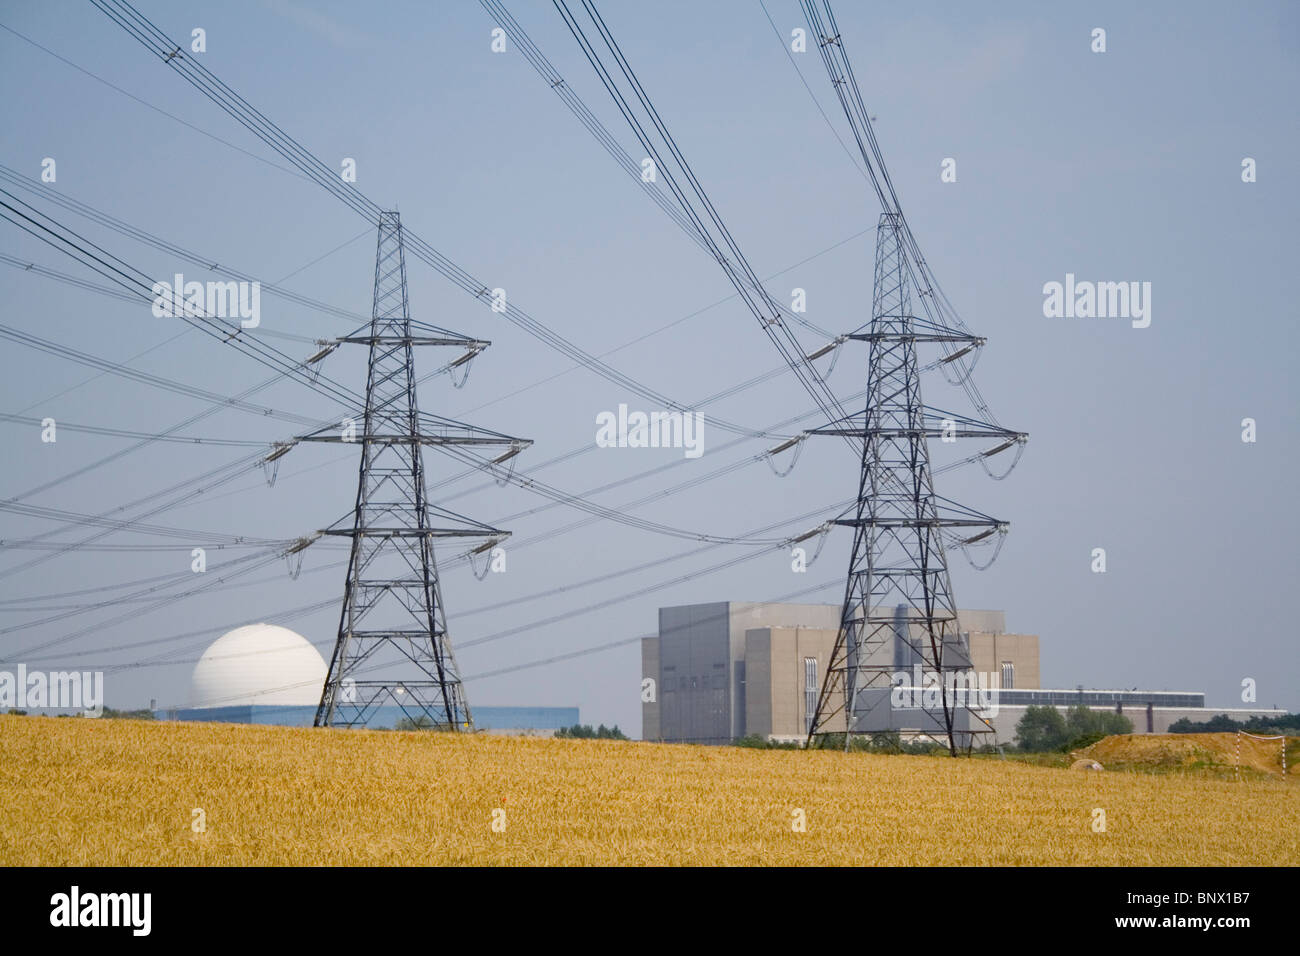 Electric pylons running to Sizewell nuclear power station in Suffolk. - Stock Image